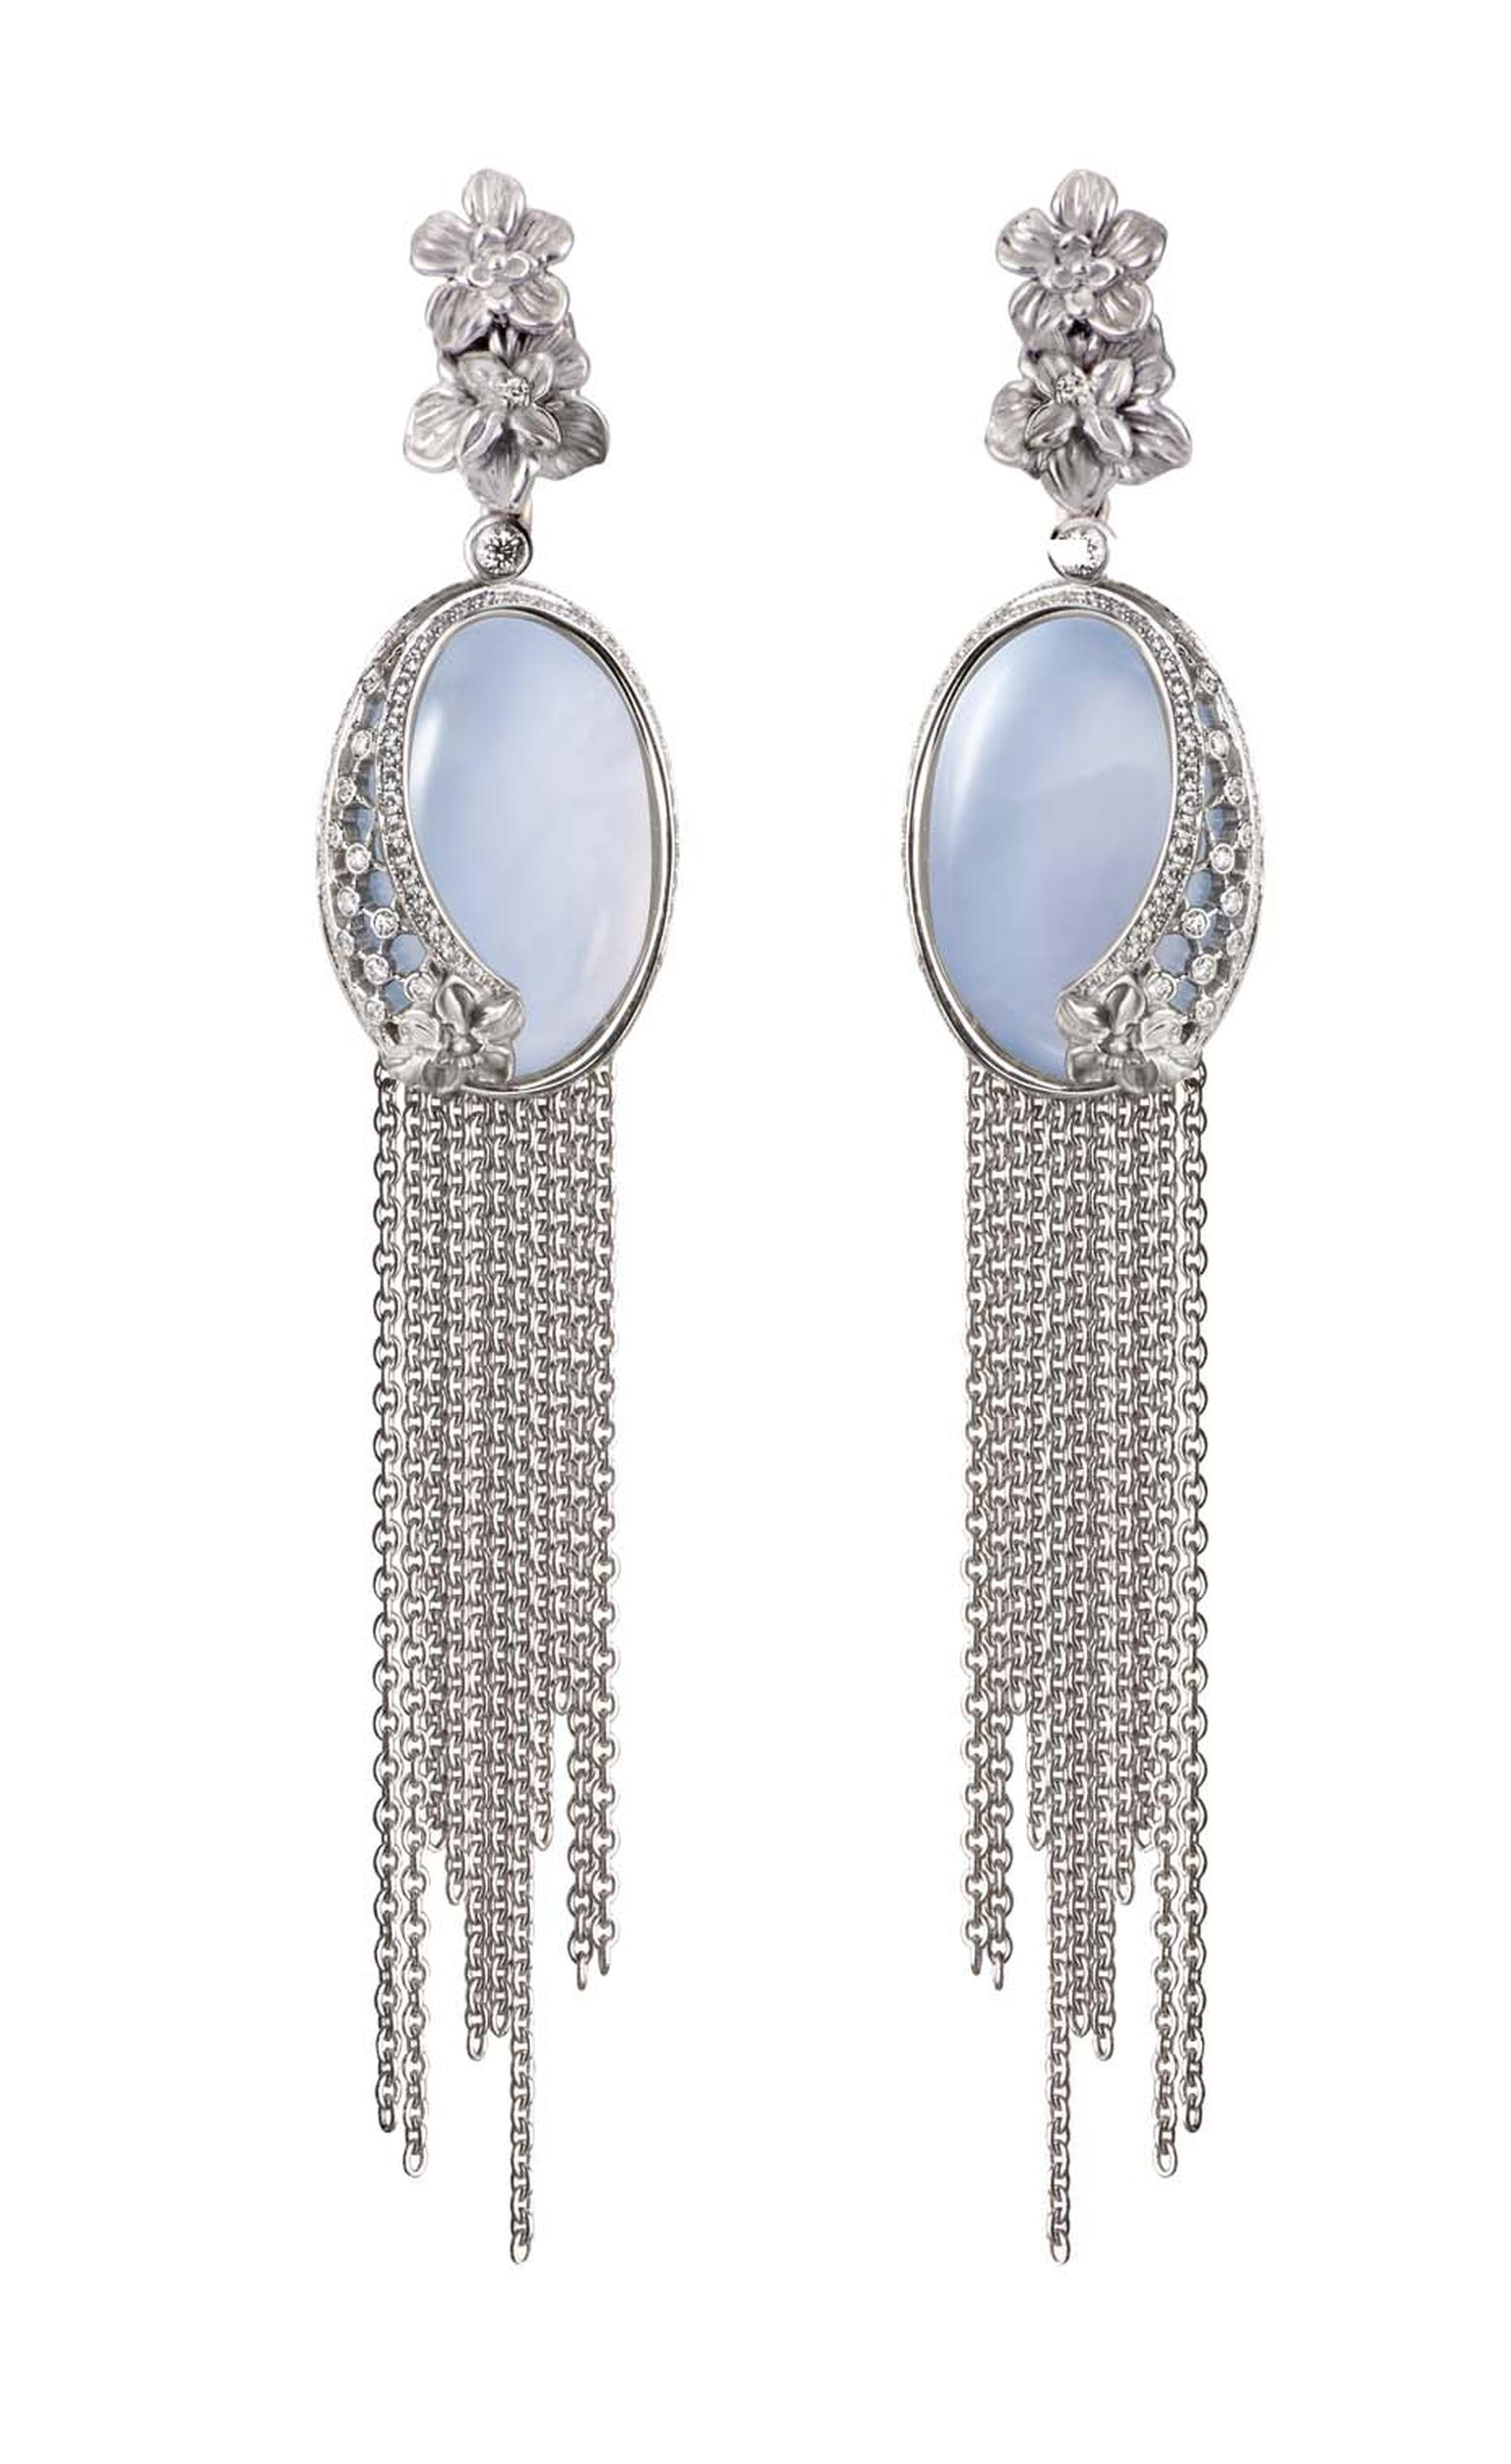 Carrera y Carrera Sierpes maxi earrings in white gold, chalcedony and diamonds.